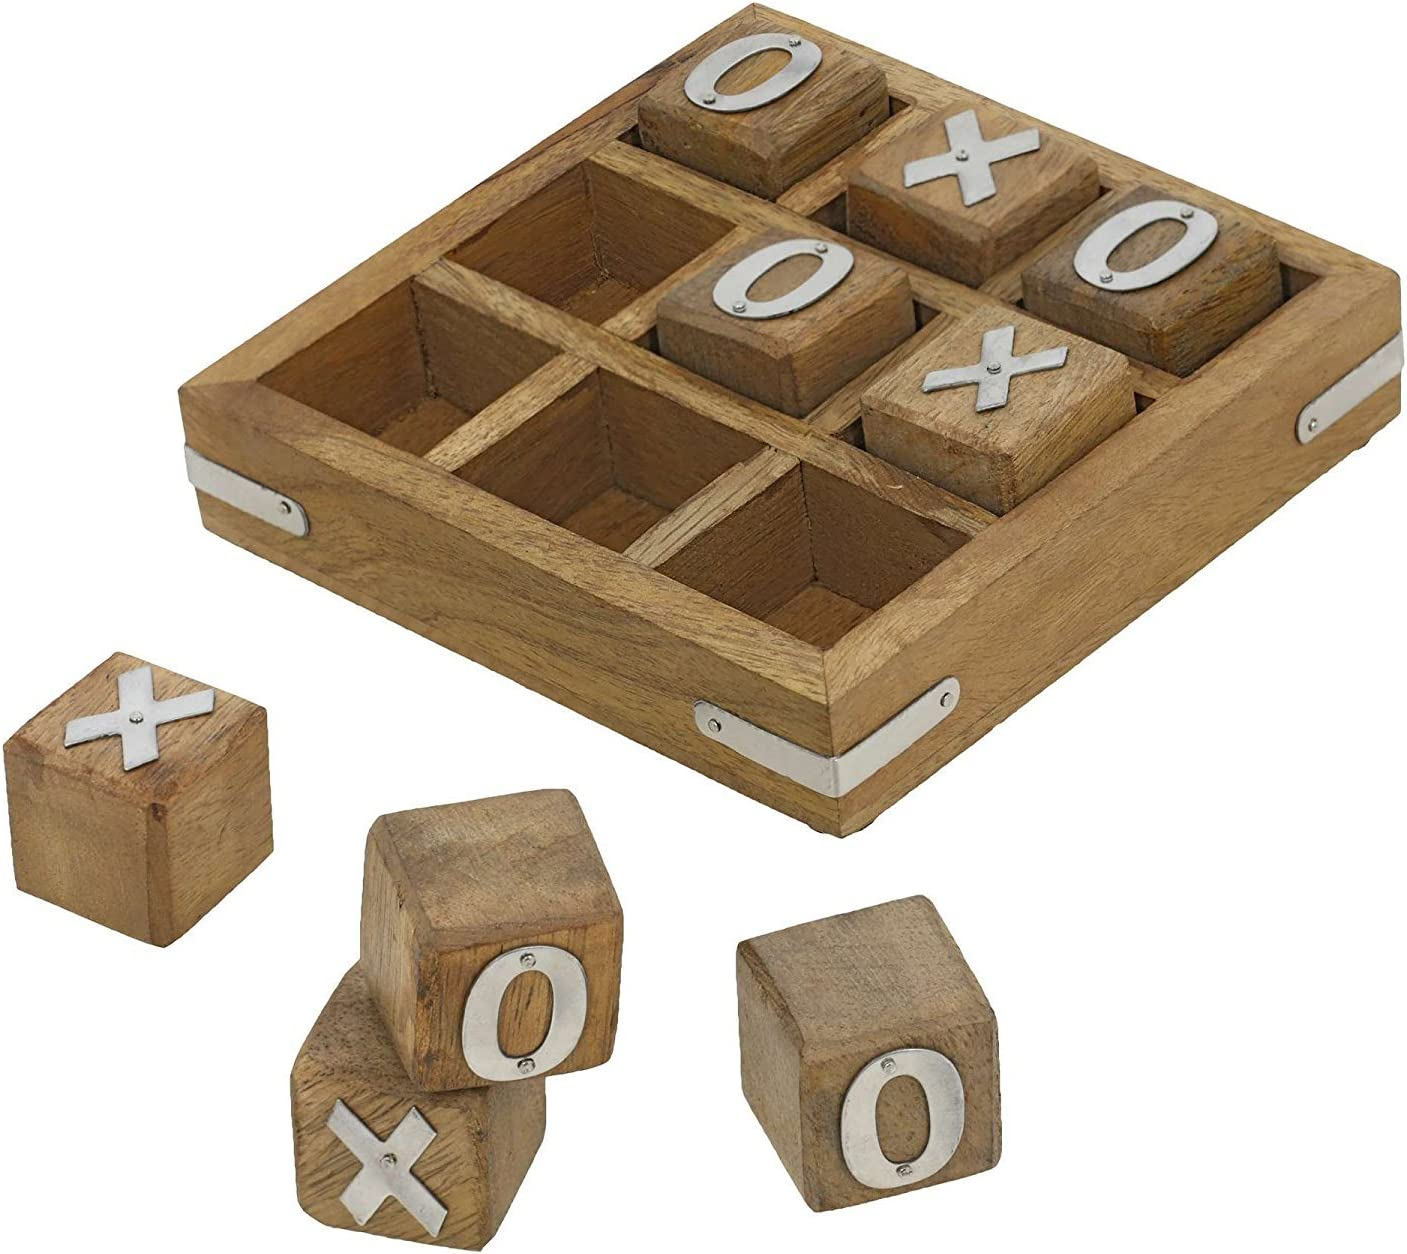 Indian Glance Tic Tac Toe Wooden Game Set for Kids 7 and Up - Unique Gifts for Kids for All Occasions